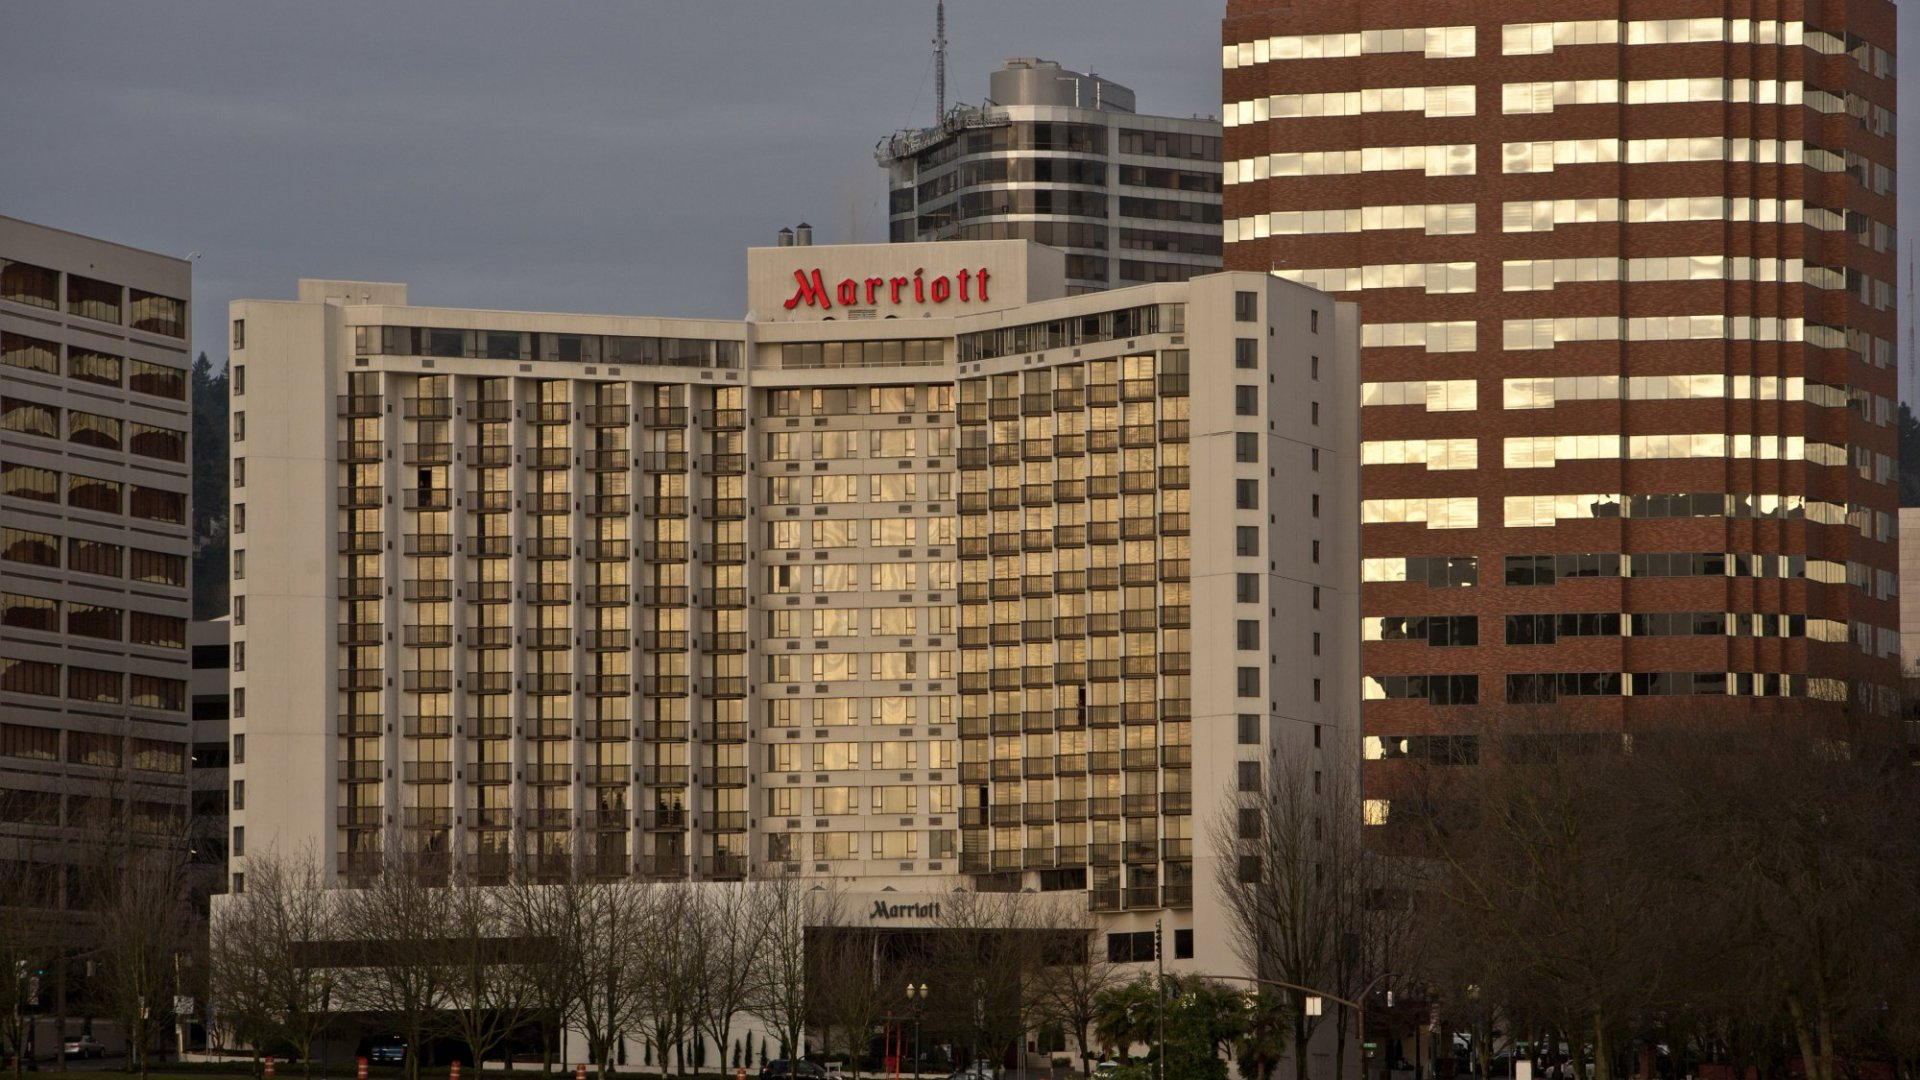 Marriott Buys Rival Starwood to Become World's Largest Hotel Chain